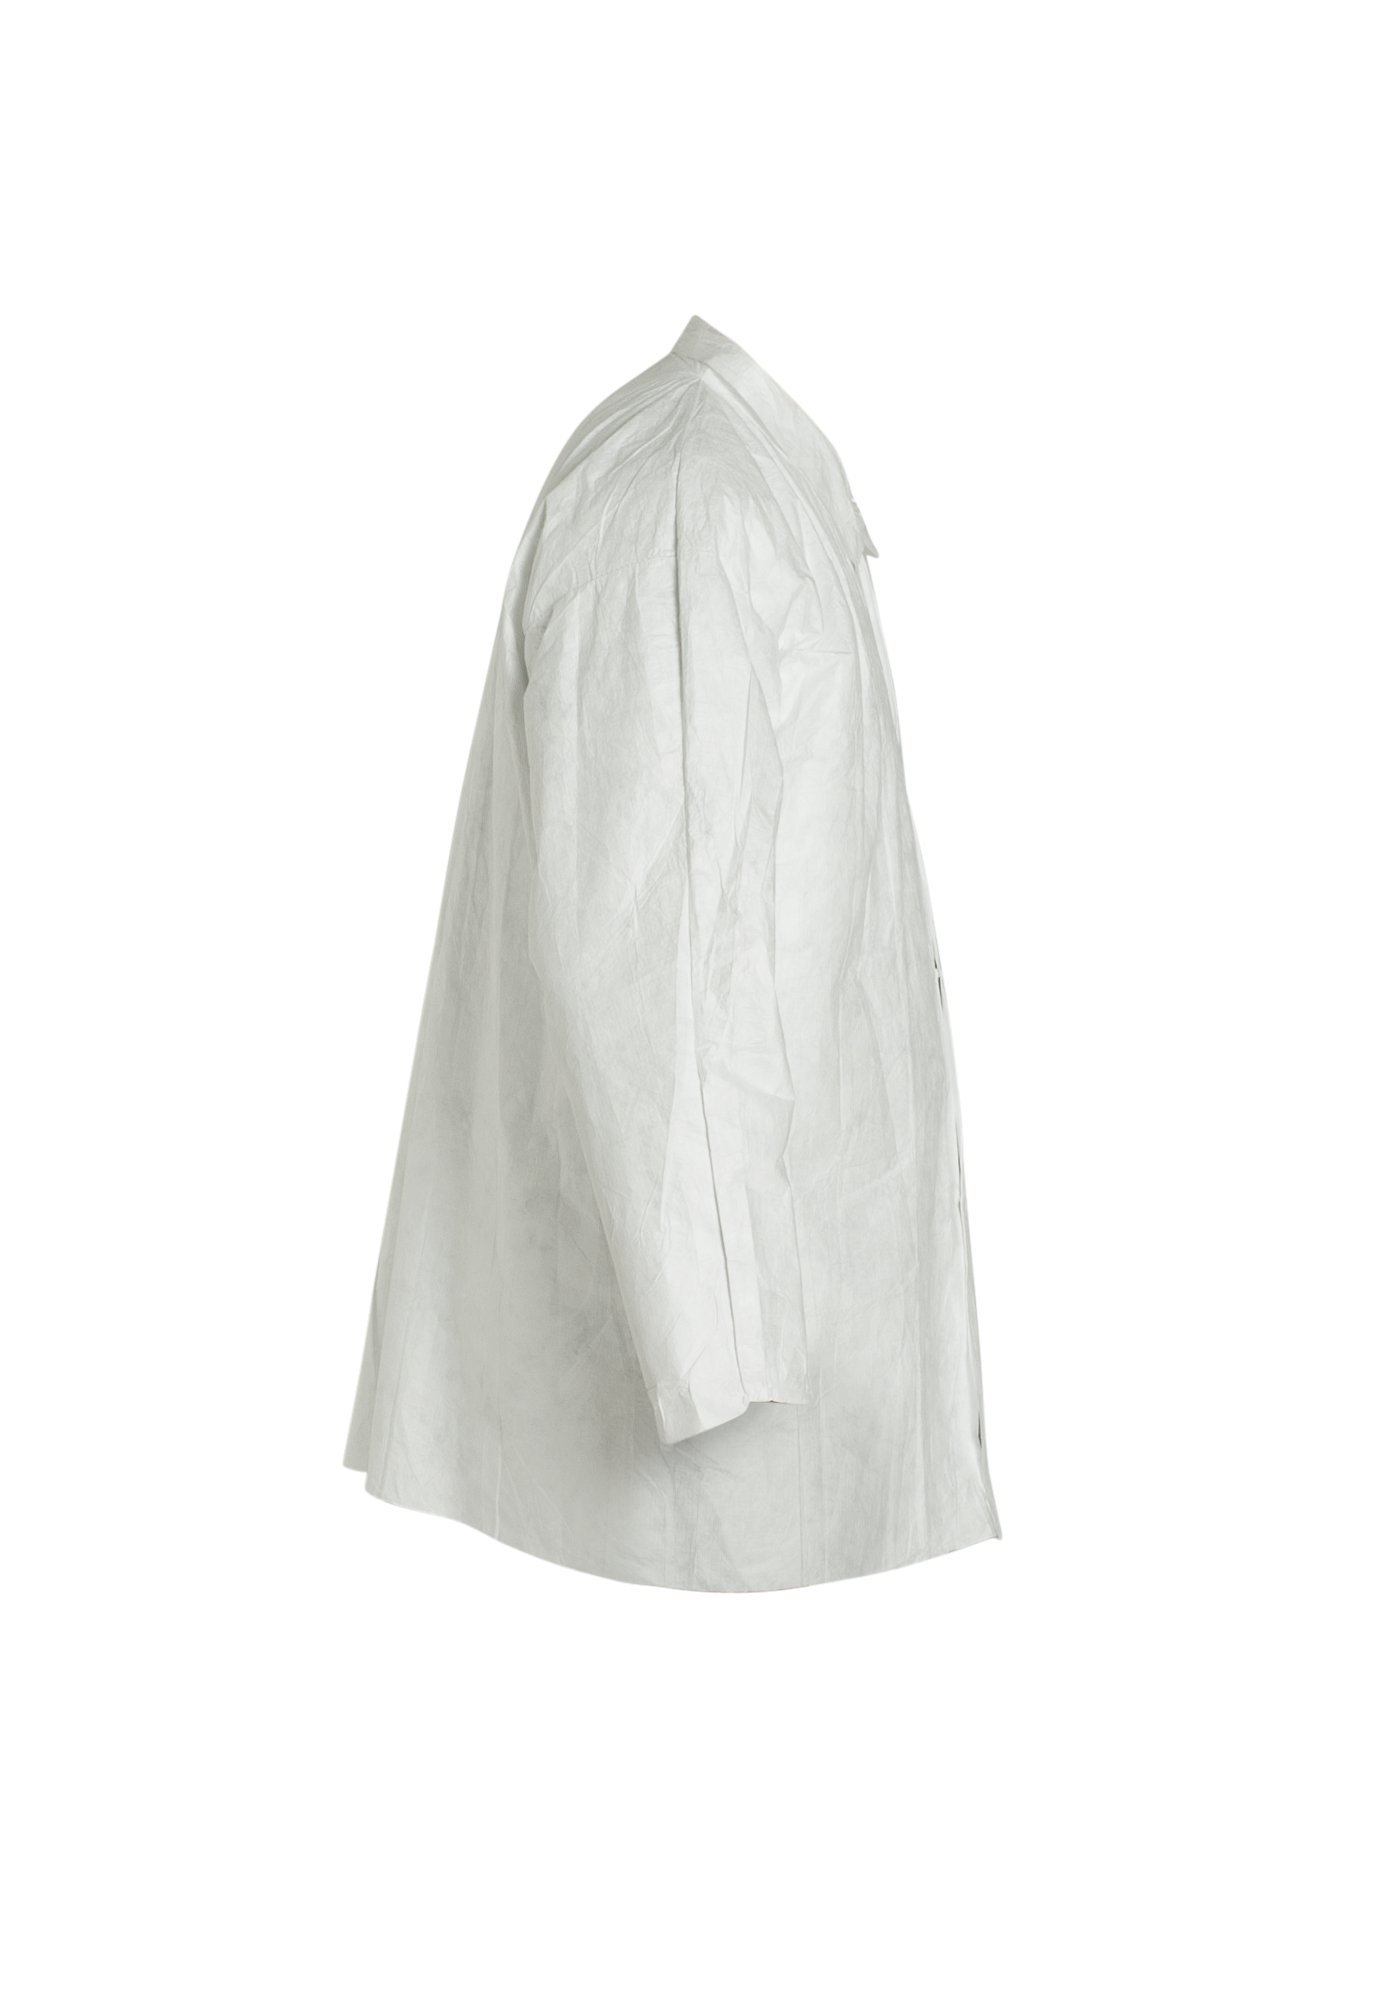 DuPont Tyvek 400 TY303S Disposable Shirt with Open Cuff, White, 2X-Large (Pack of 50) by DuPont (Image #2)